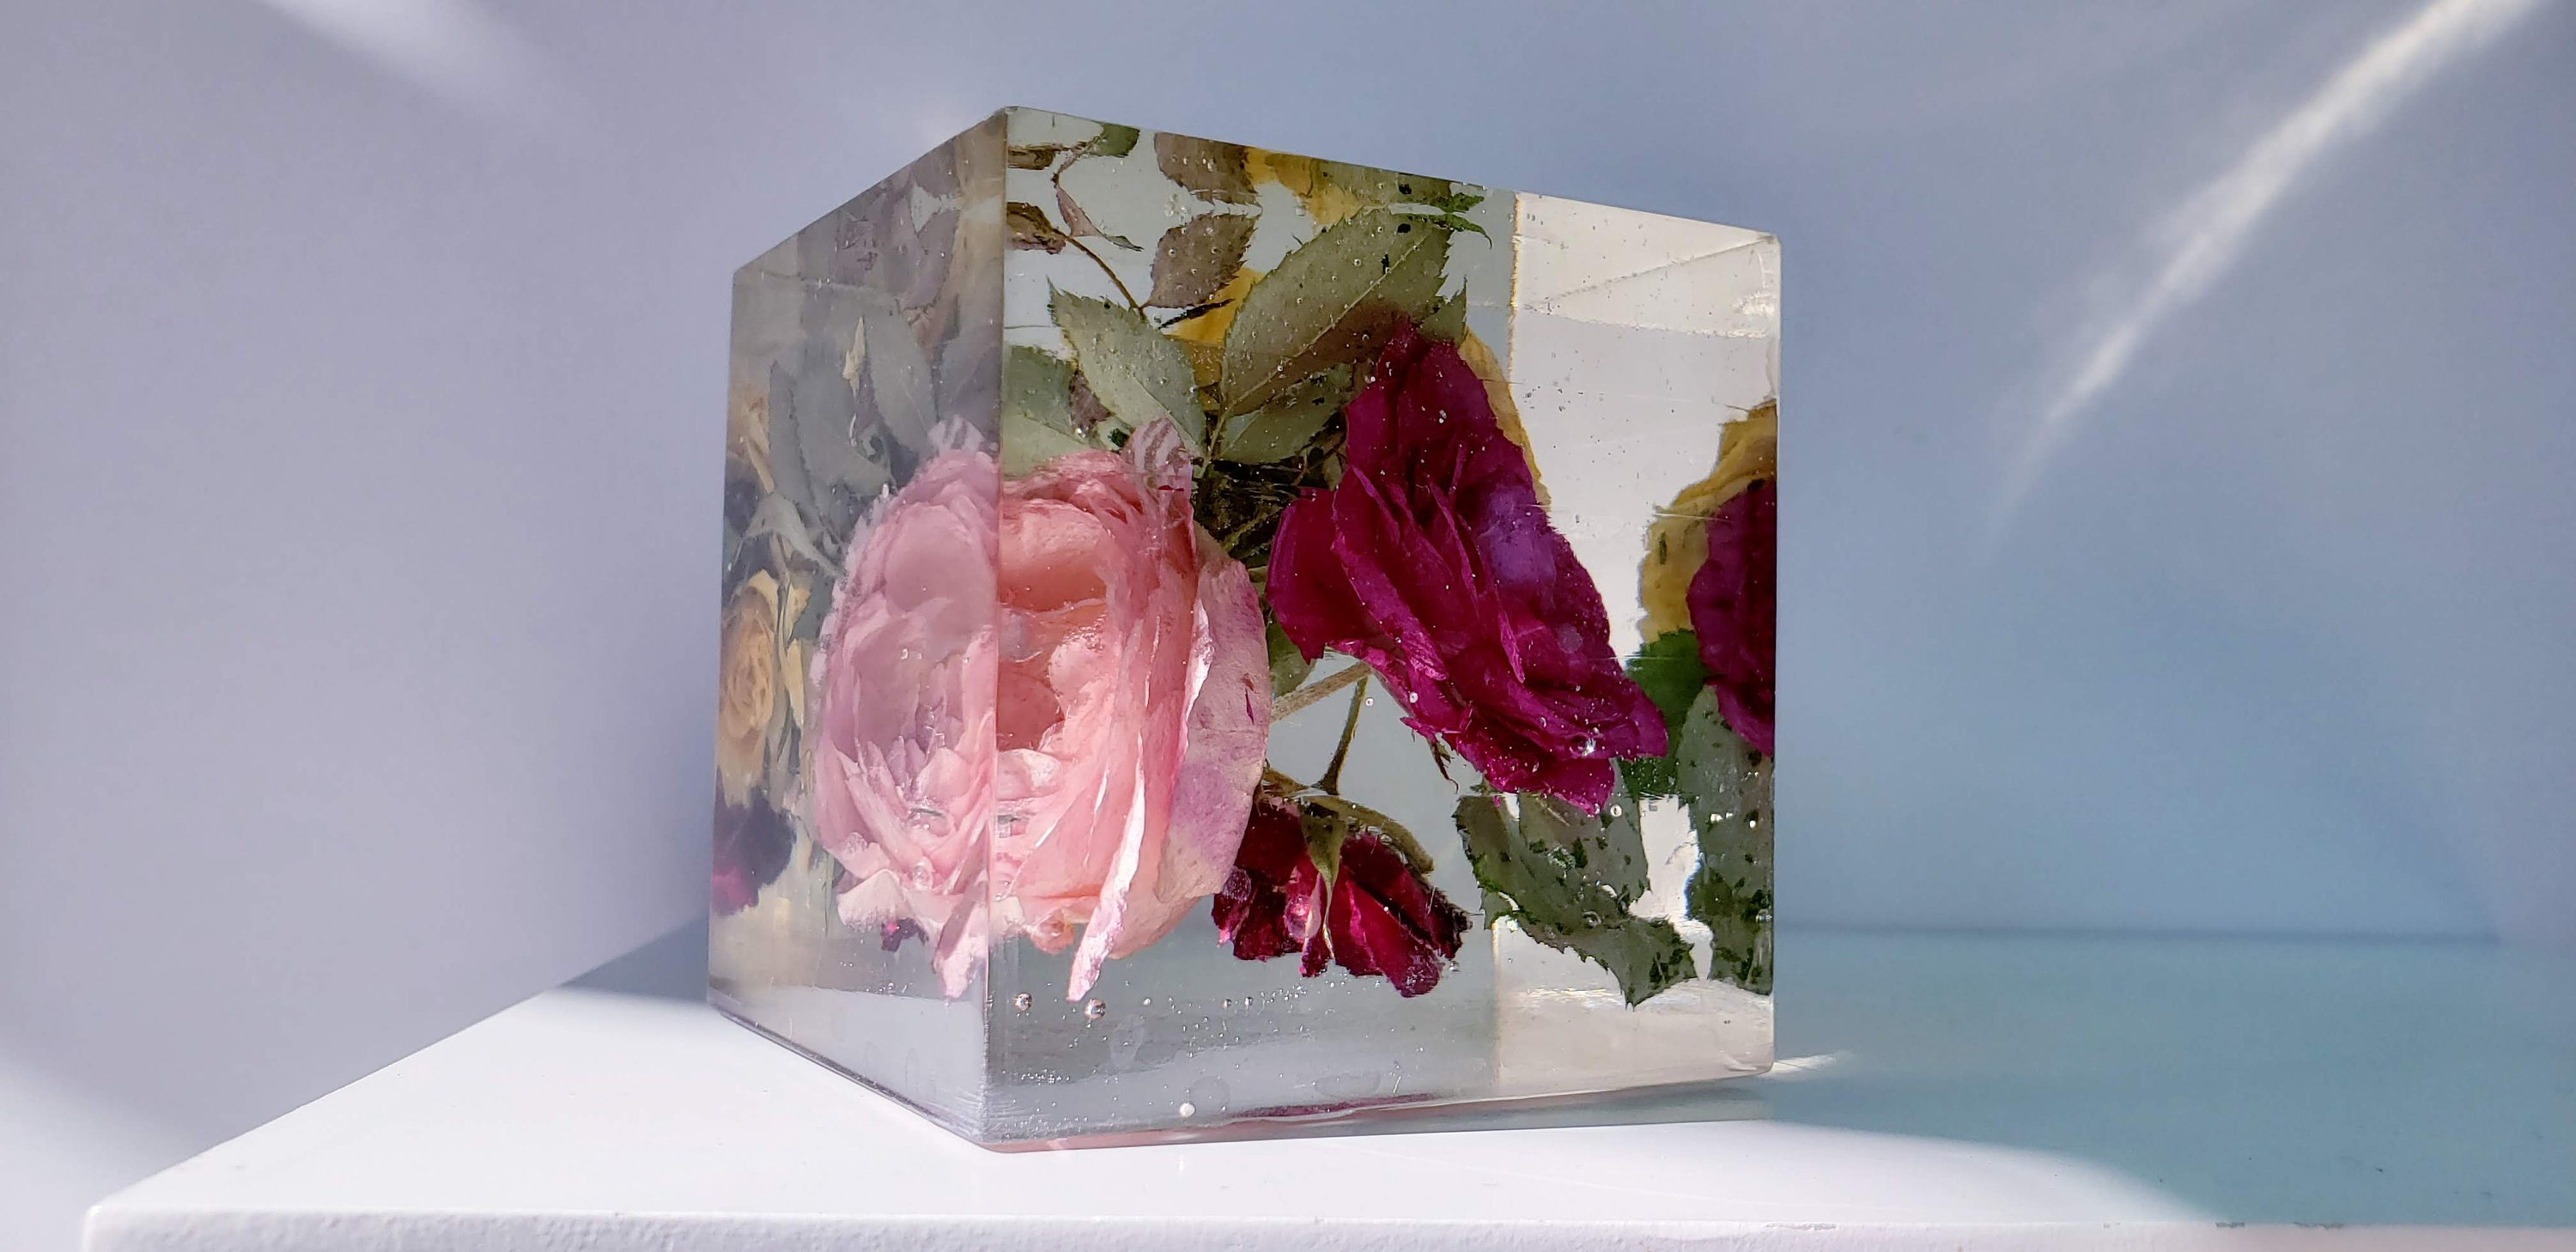 Preserving Wedding Flowers In Large Resin Cube. Accepting